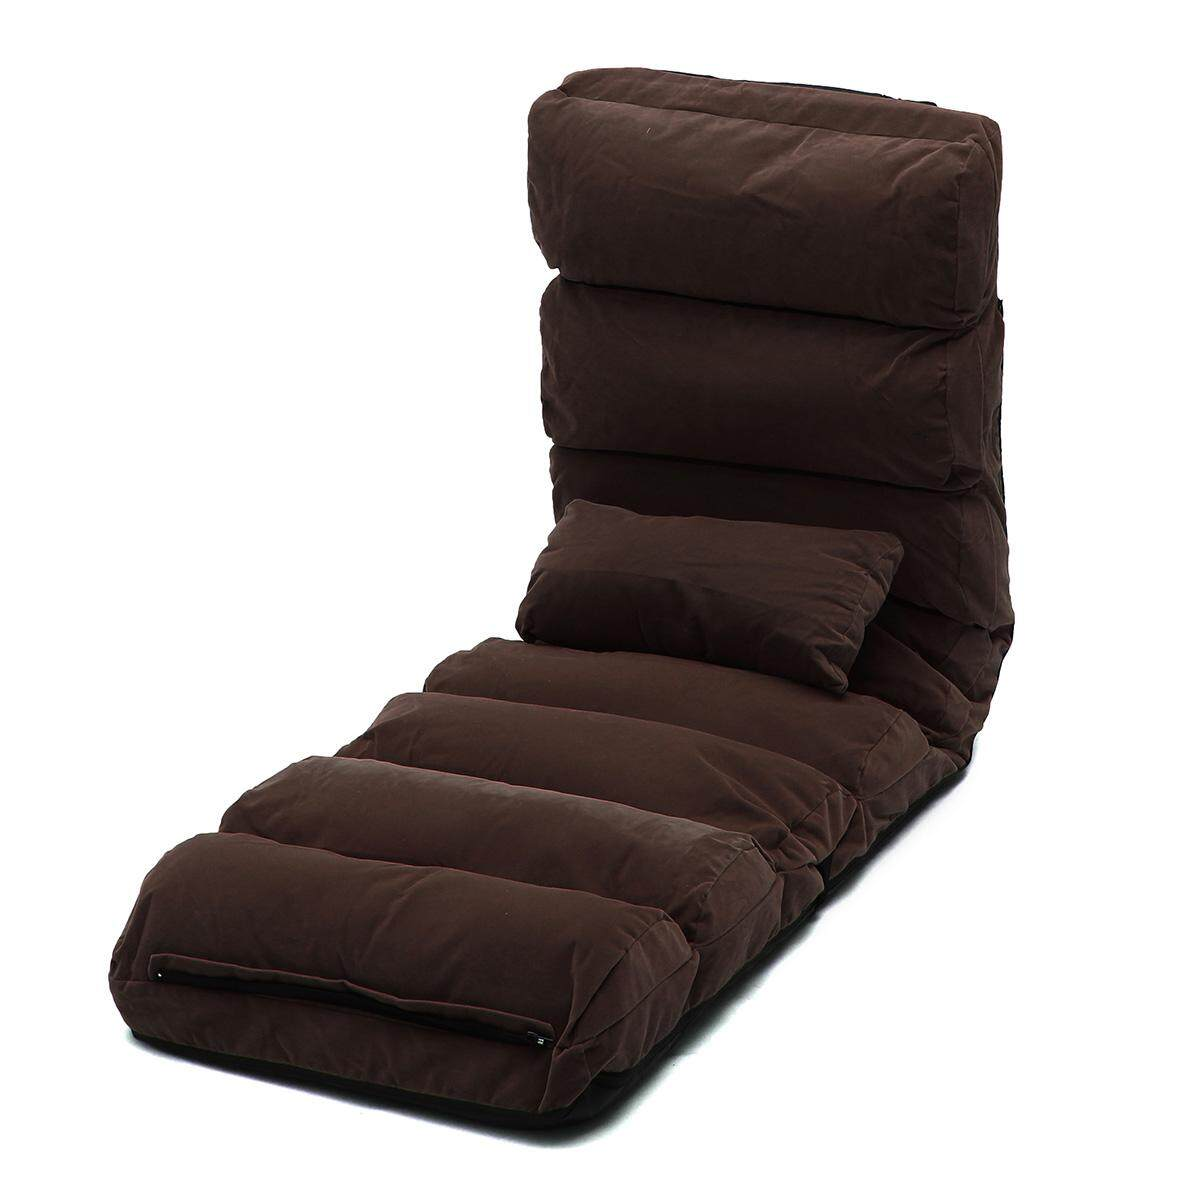 Lounge Sofa Bed Floor Recliner Folding Chaise Chair Adjustable Foldable AU Home Dark coffee(Standard Size)